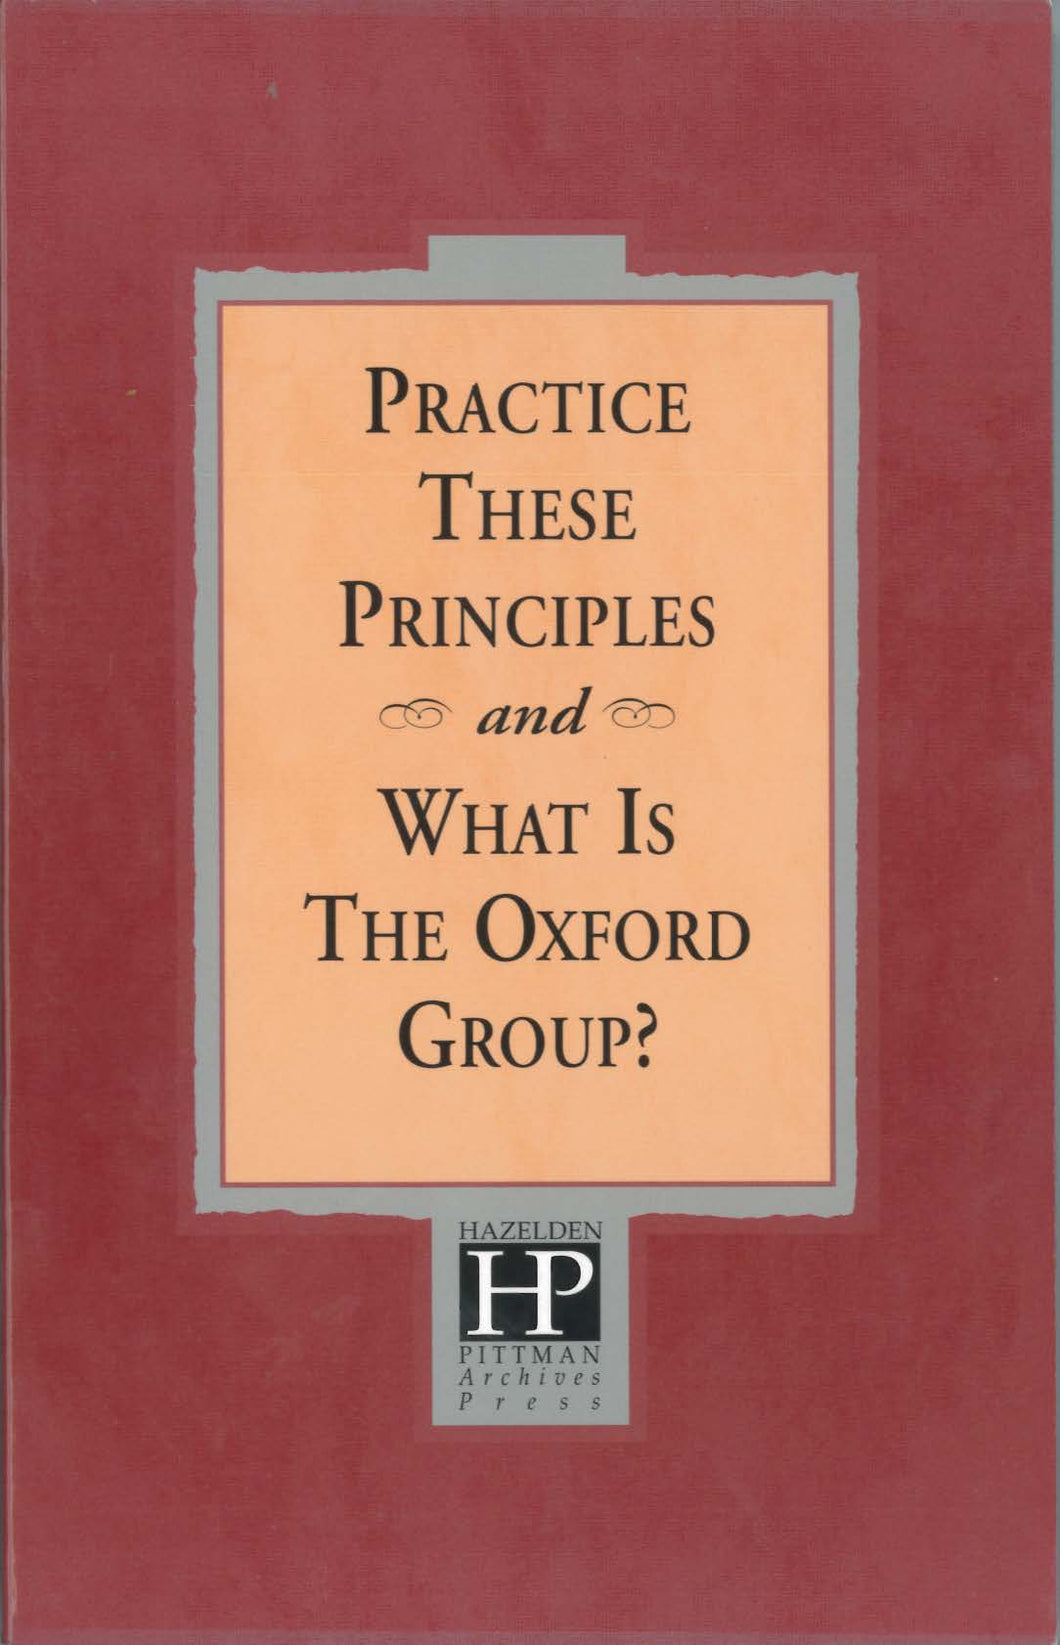 Practice These Principles /And What is the Oxford Group